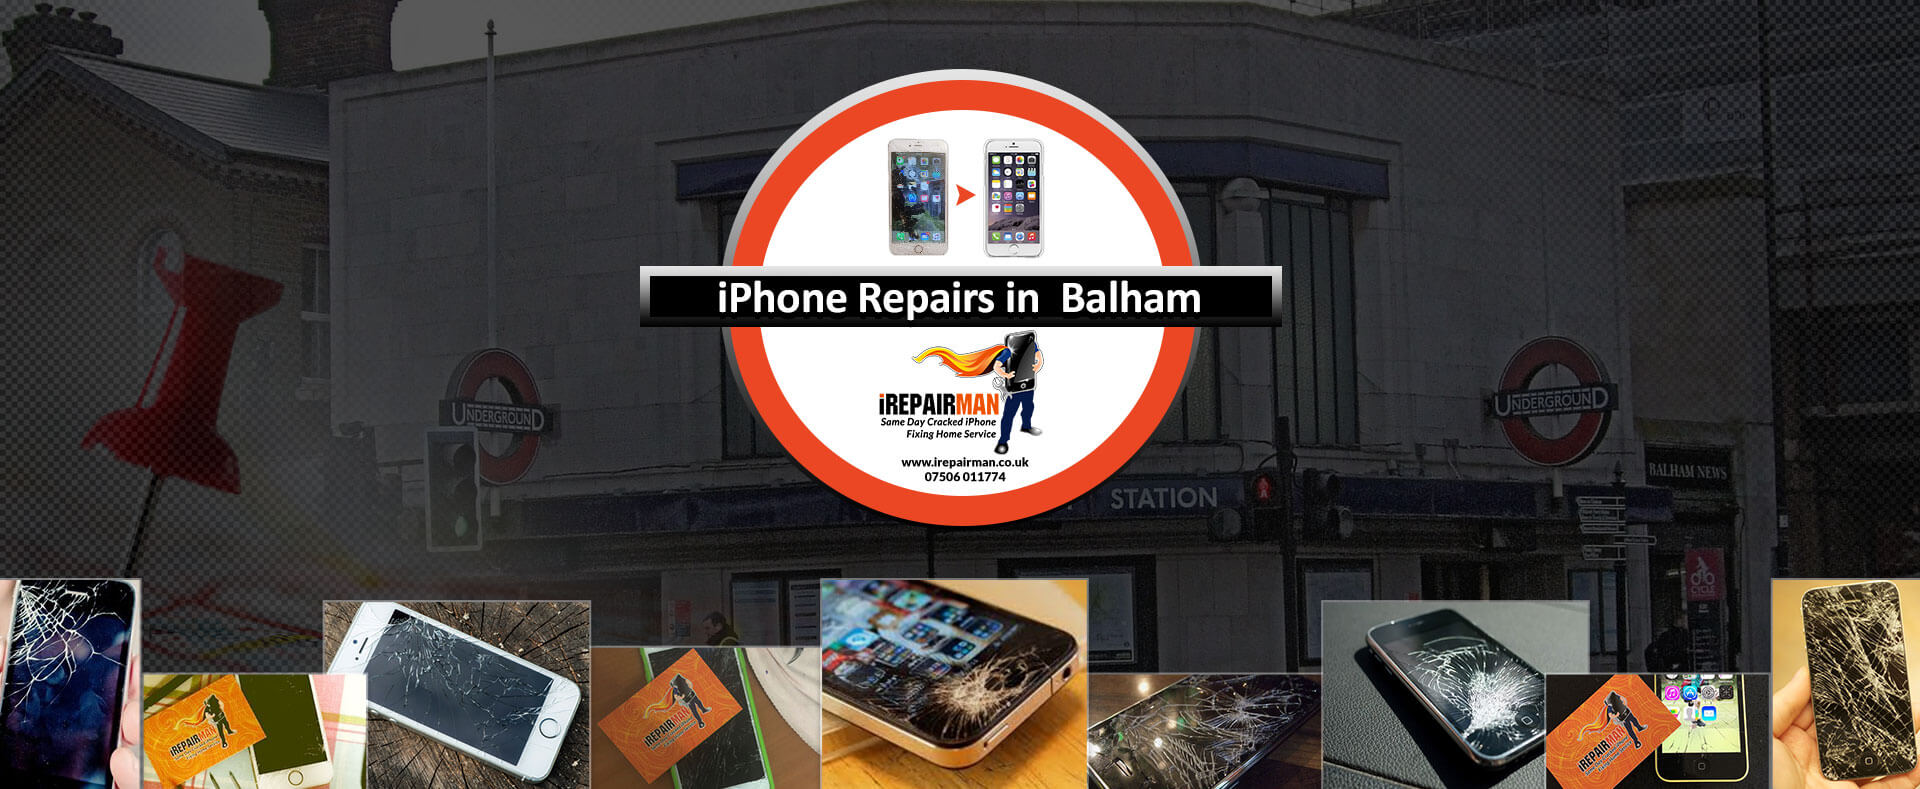 iPhone Repairs in Balham